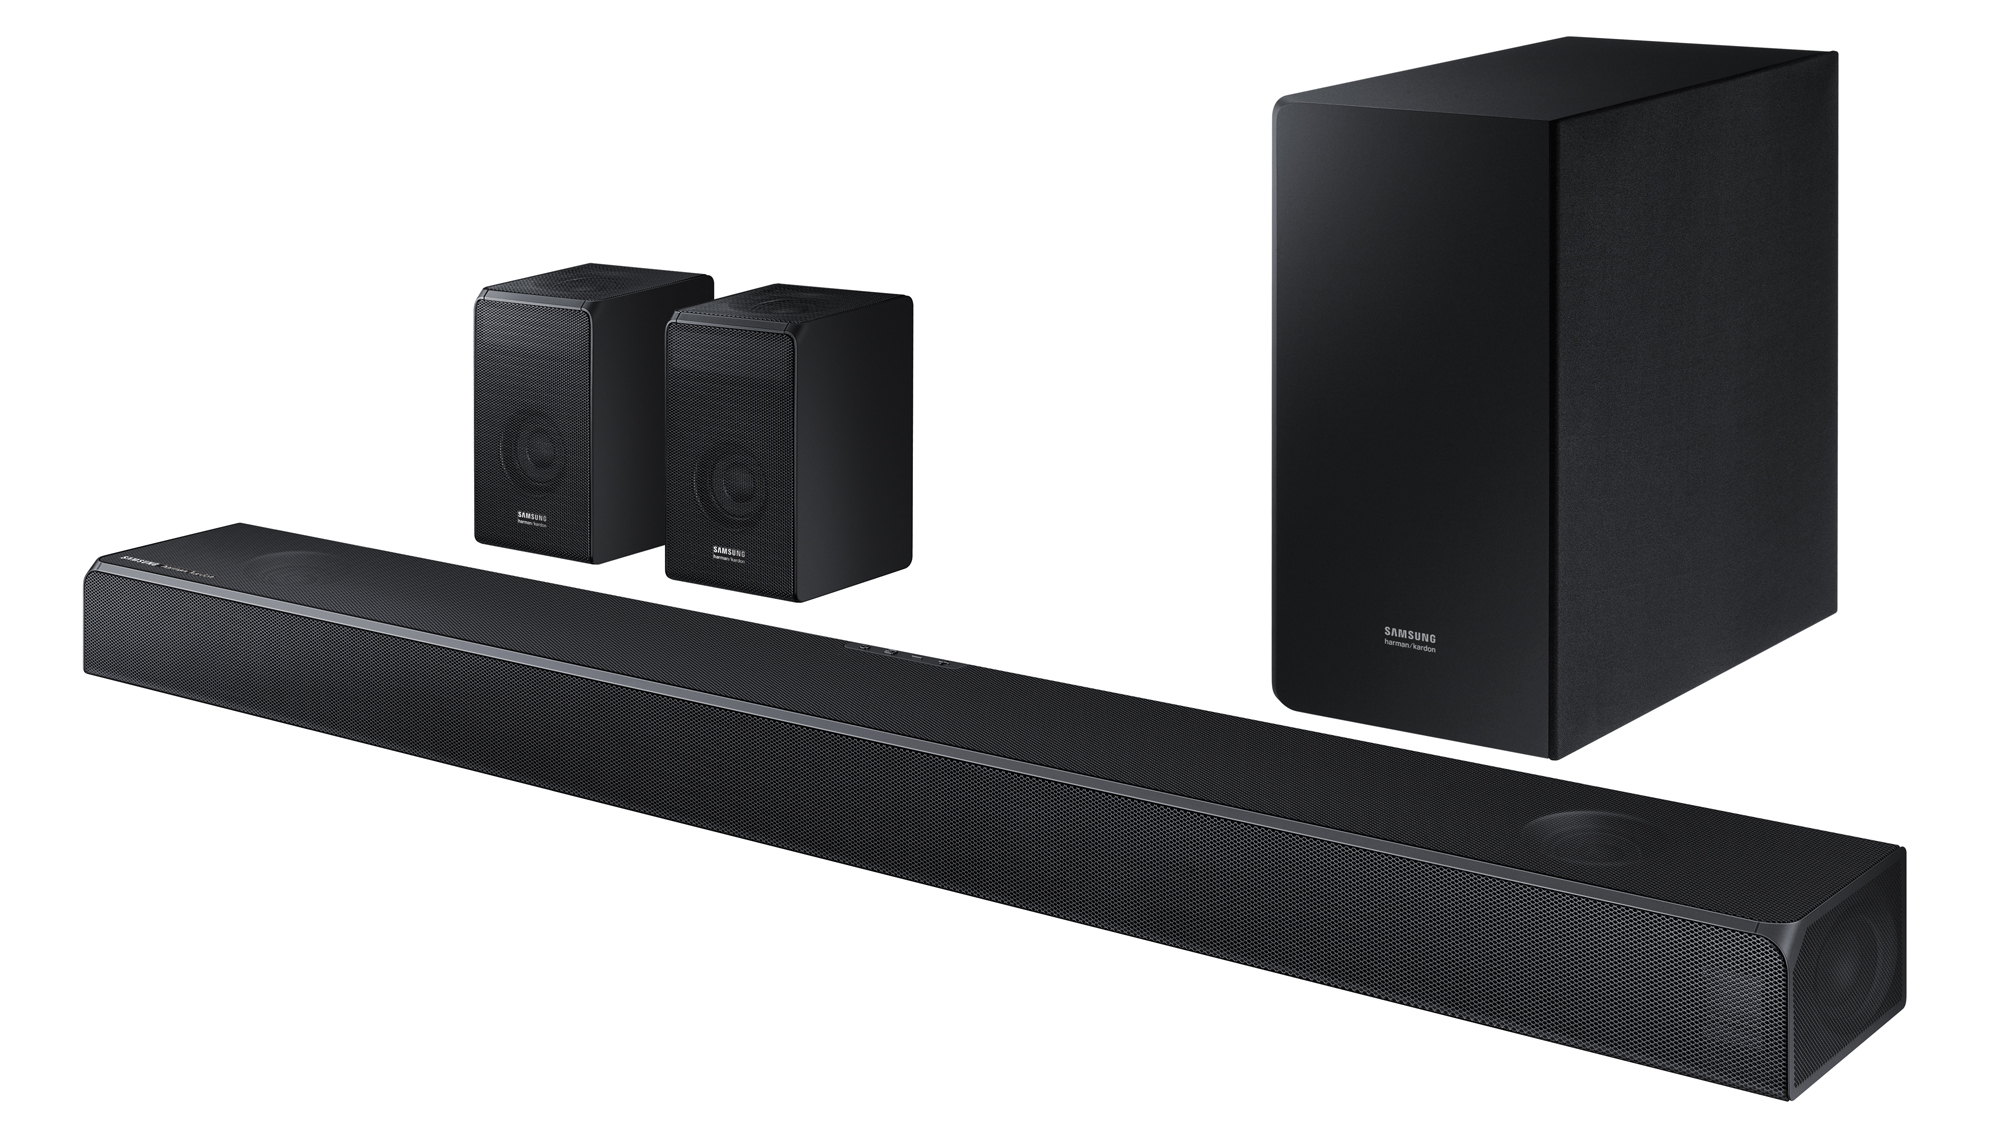 Samsung HW-N950 Soundbar Review